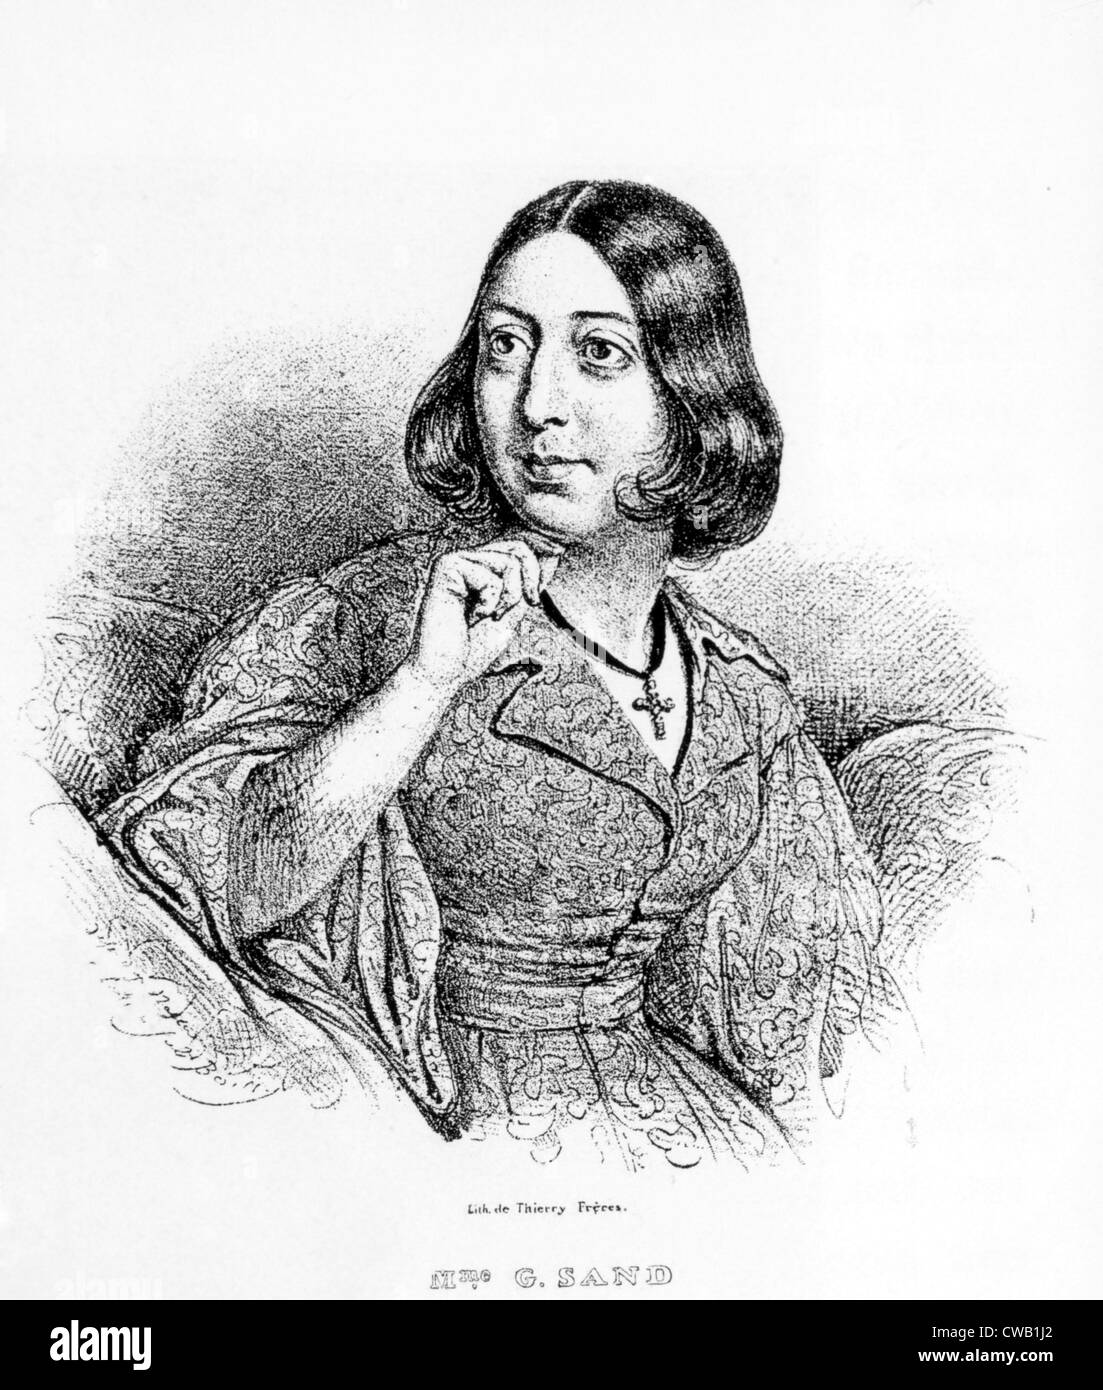 George Sand (1804-1876), lithograph by J. Boilin - Stock Image